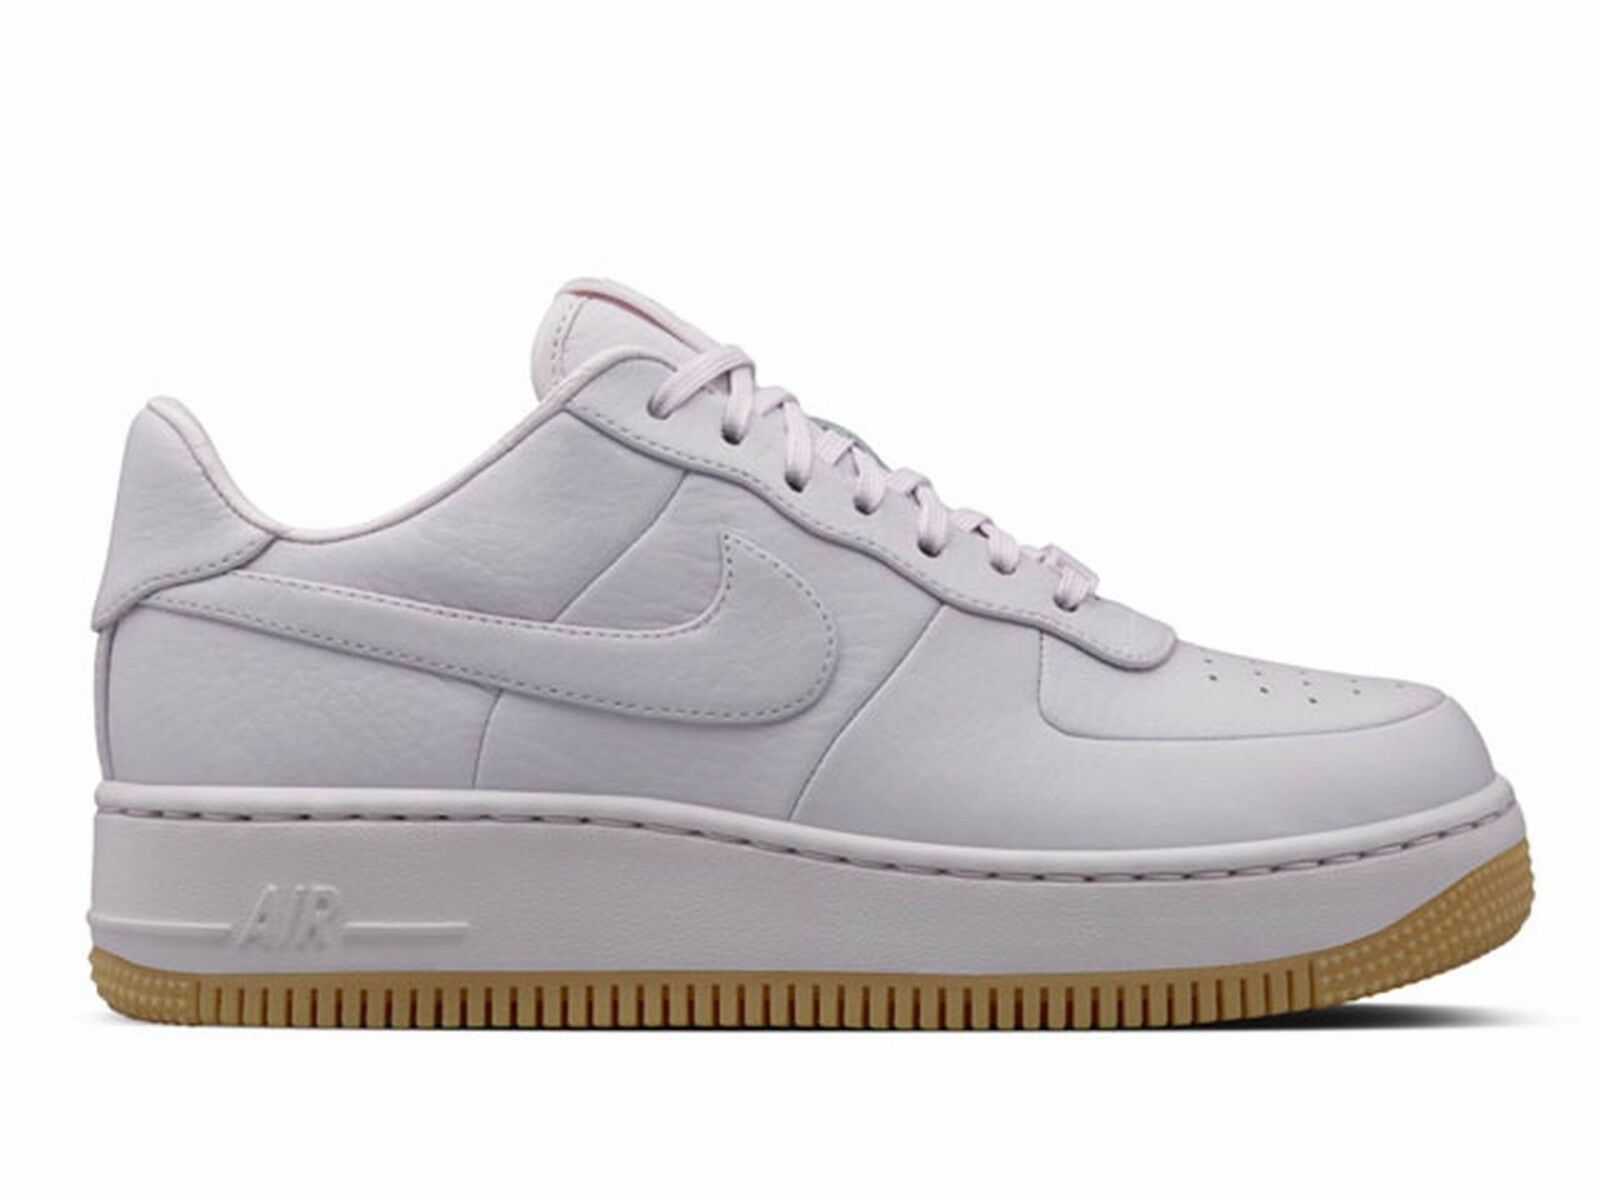 NIKE AF1 LOW UPSTEP PINNACLE  Wmn Sz 8 Leather VENICE-GUM YELLOW